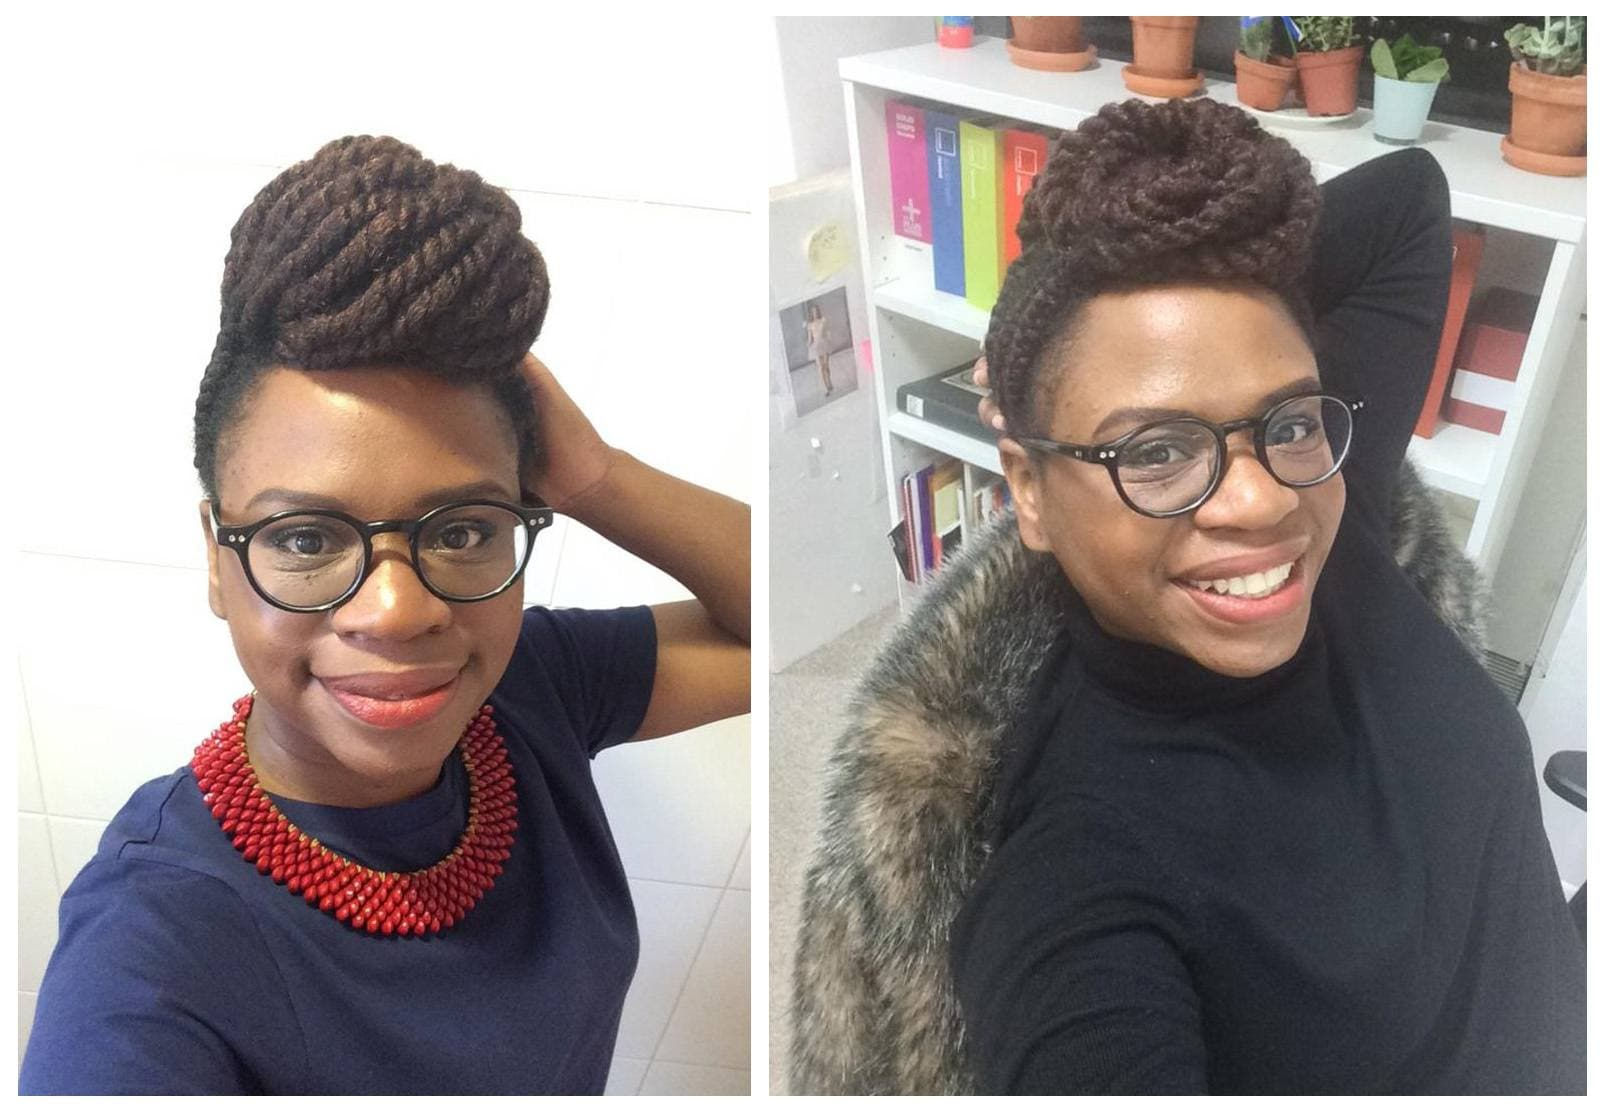 Real Hair Stories Nadia Williams: Young black woman with braided hairstyle wearing glasses